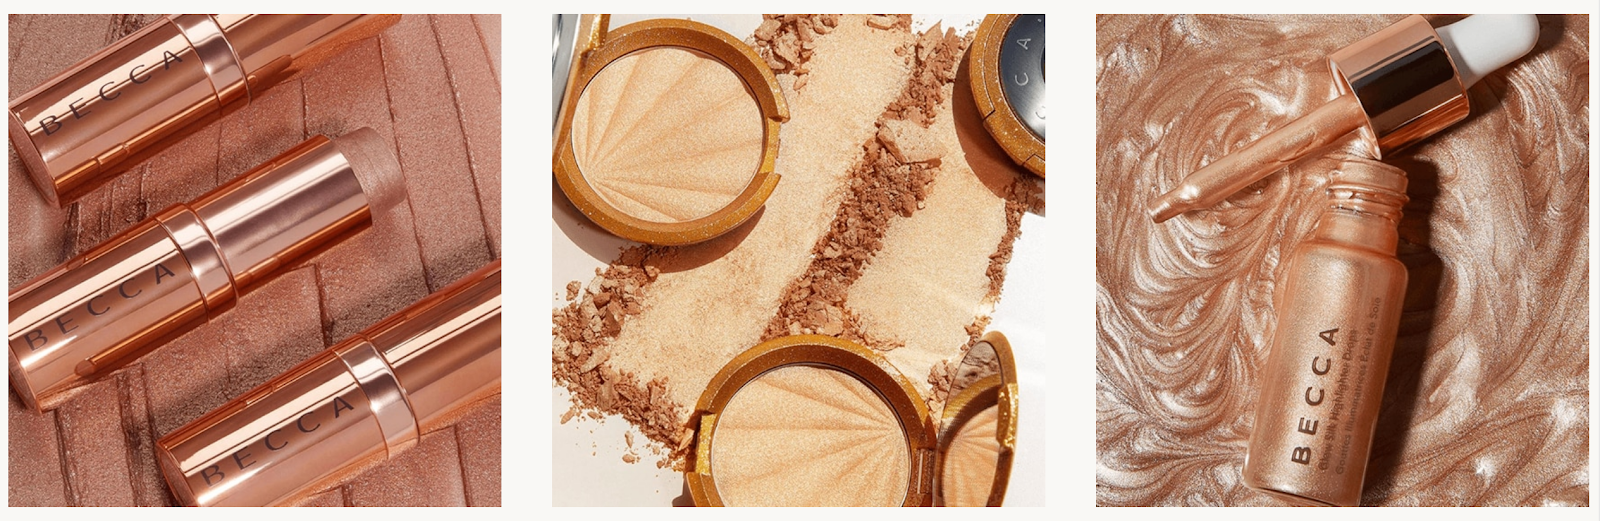 BECCA Cosmetics - Products Gallery | Makeup and Beauty Brands Looking for Influencers